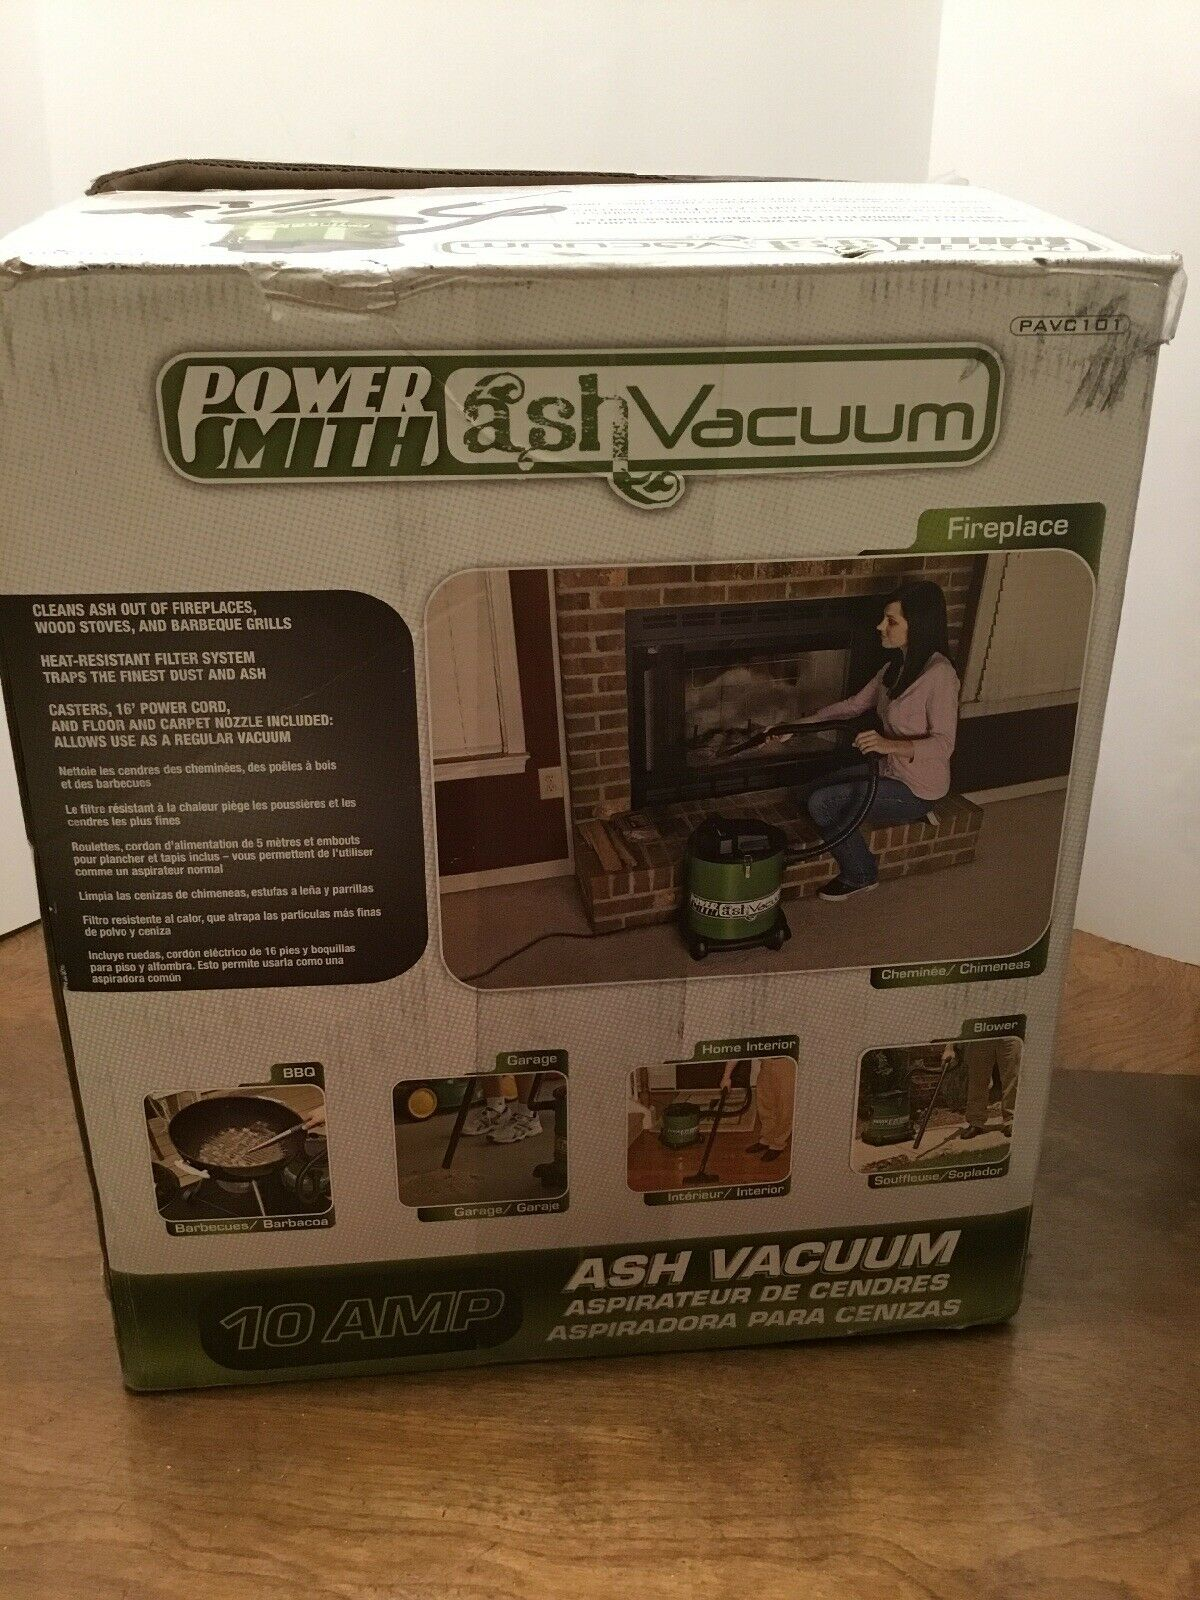 PowerSmith 10 Amp 3 Gal. Ash Vacuum-PAVC101 For Fireplace Stove Grill